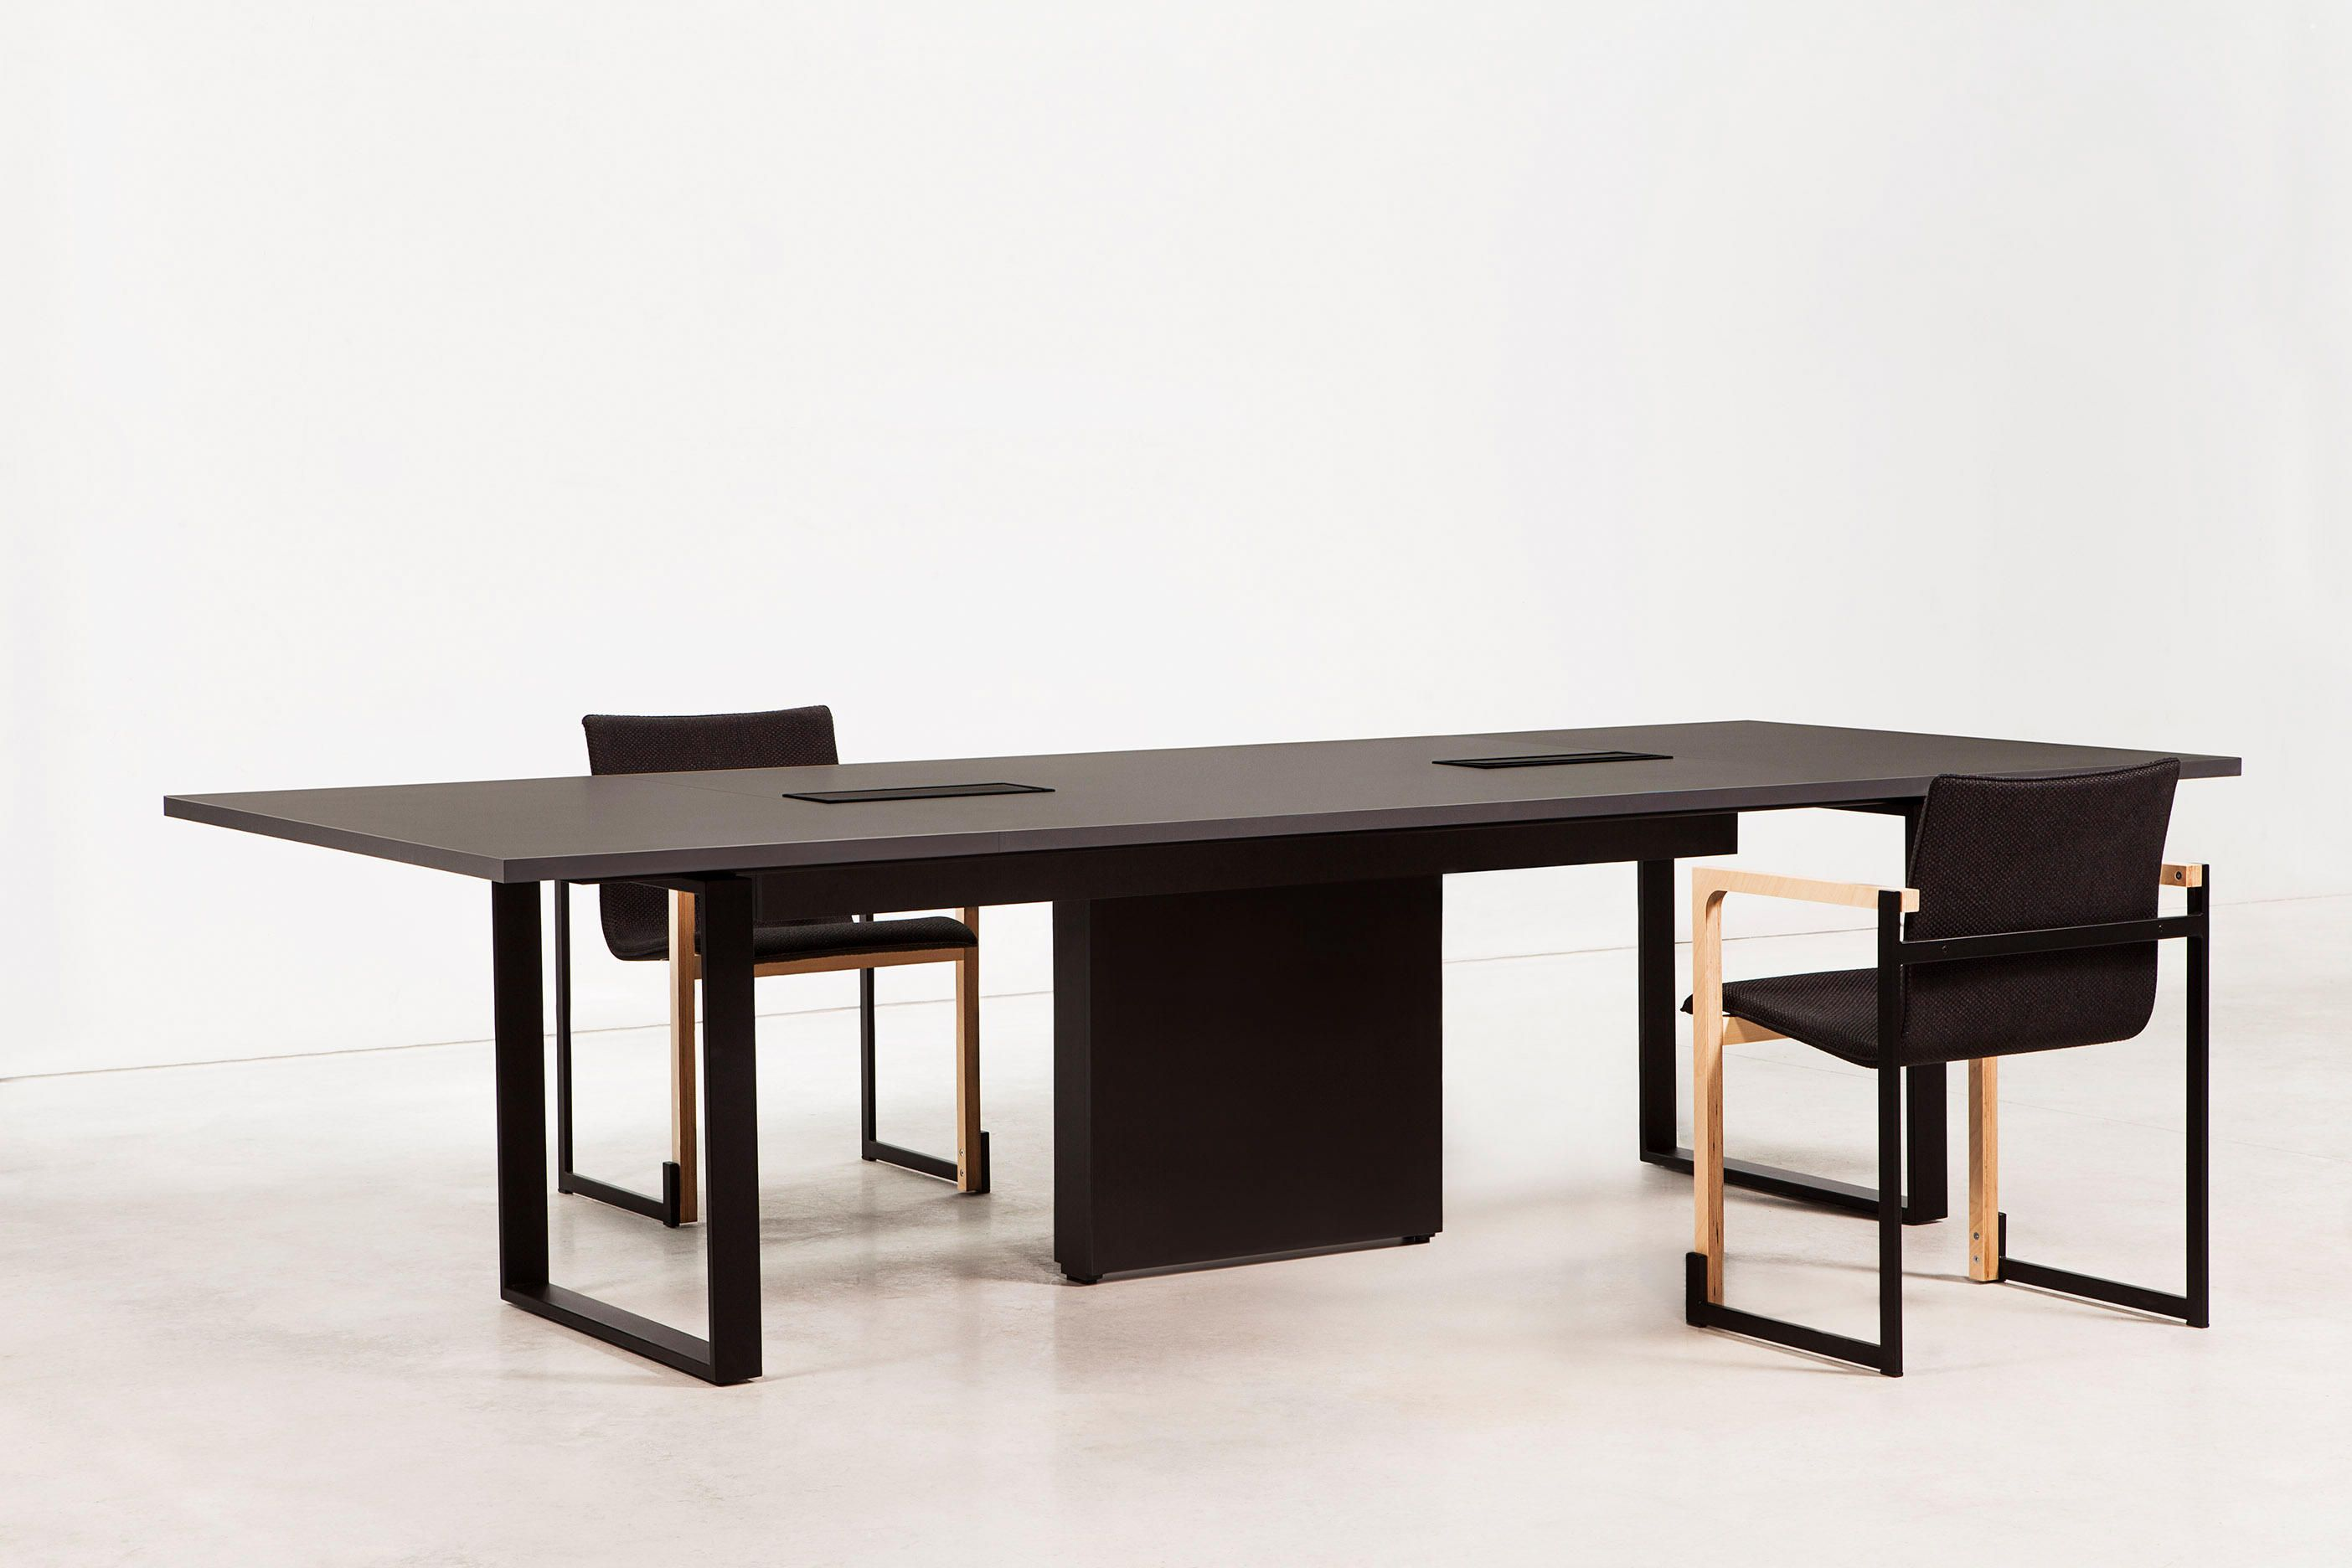 Bat Office By Francesc Rifé For Akaba Architonic Nowonarchitonic Interior Design Furniture Table Contract Black Meeting